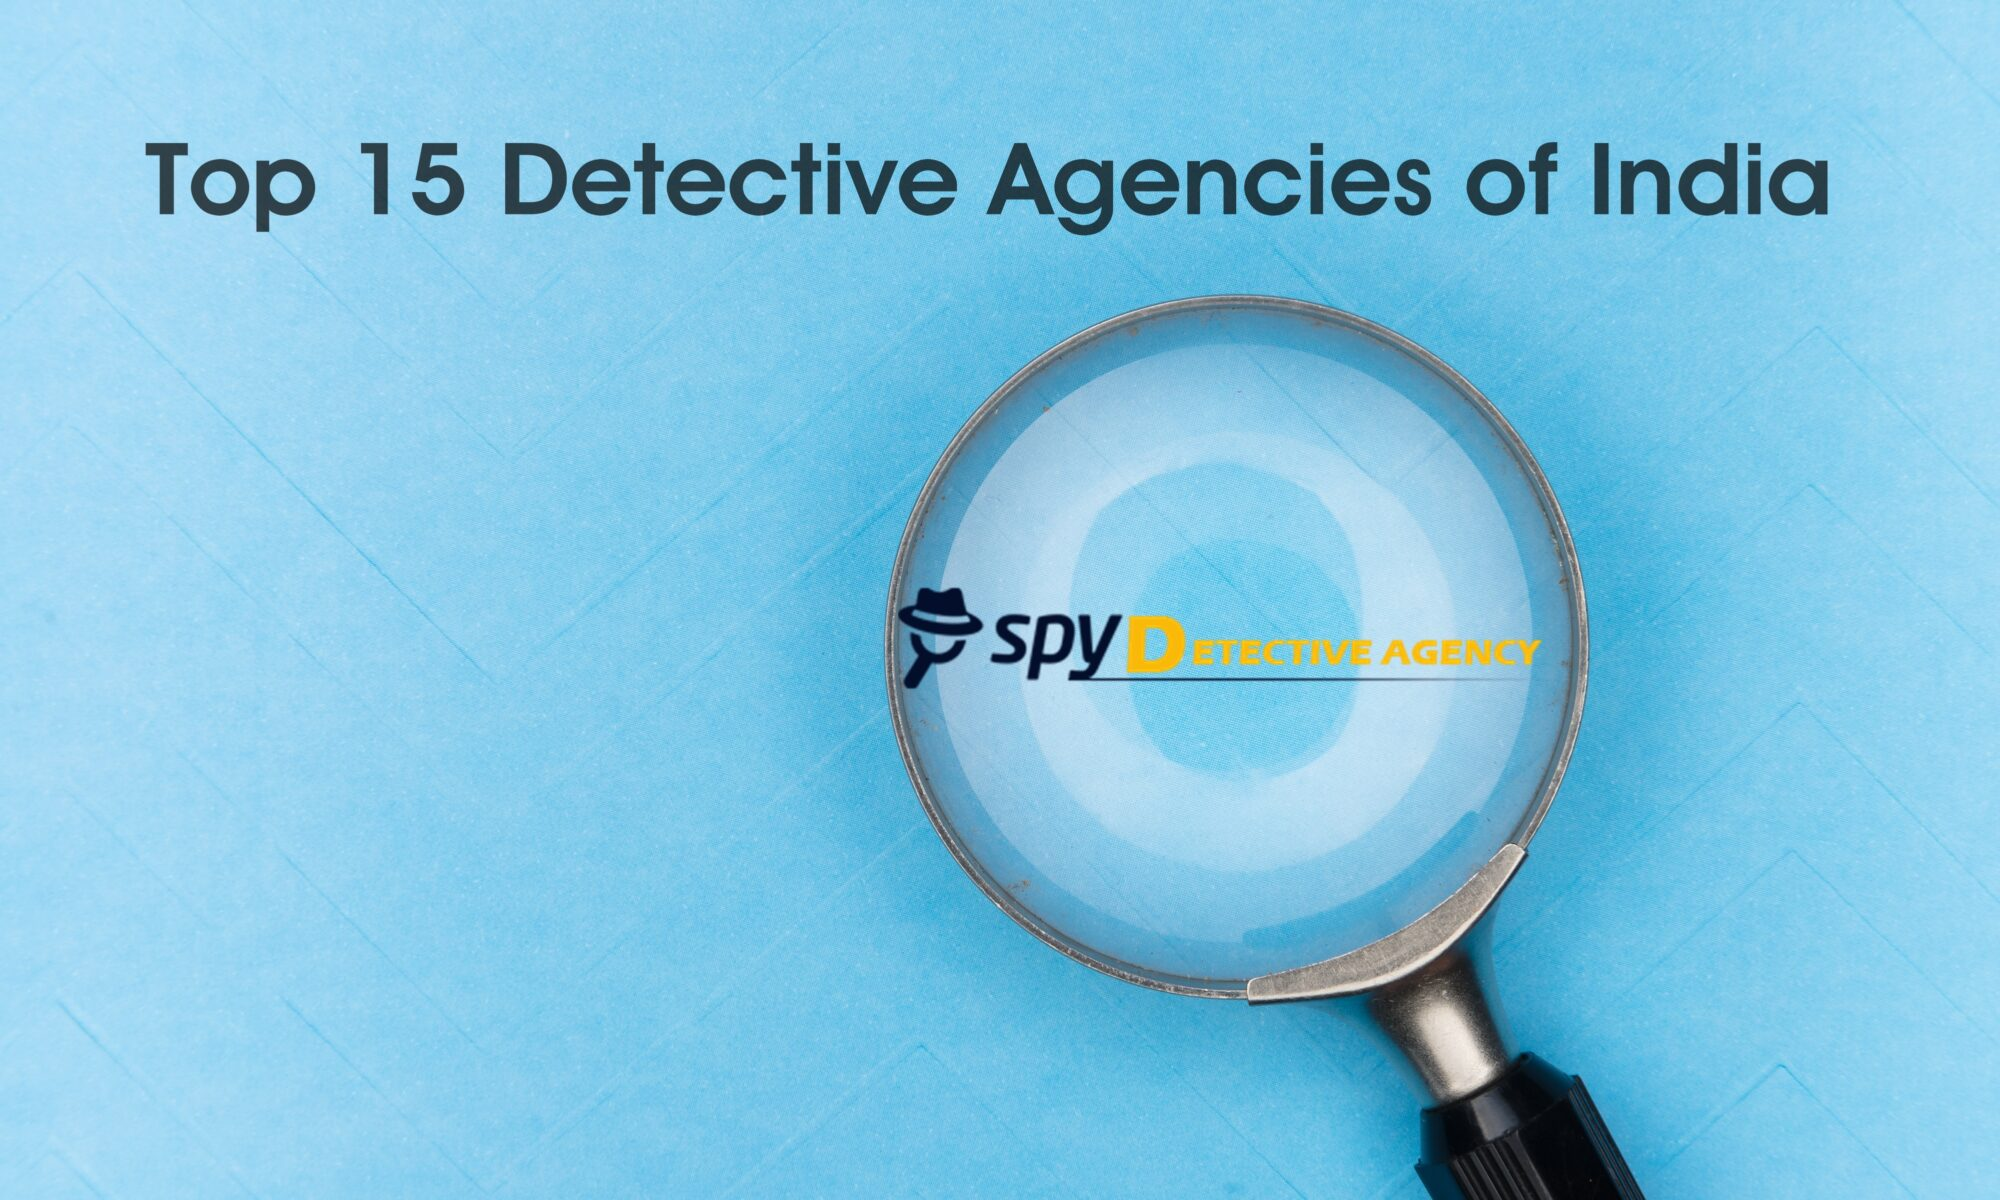 Top 15 Detective Agencies of India